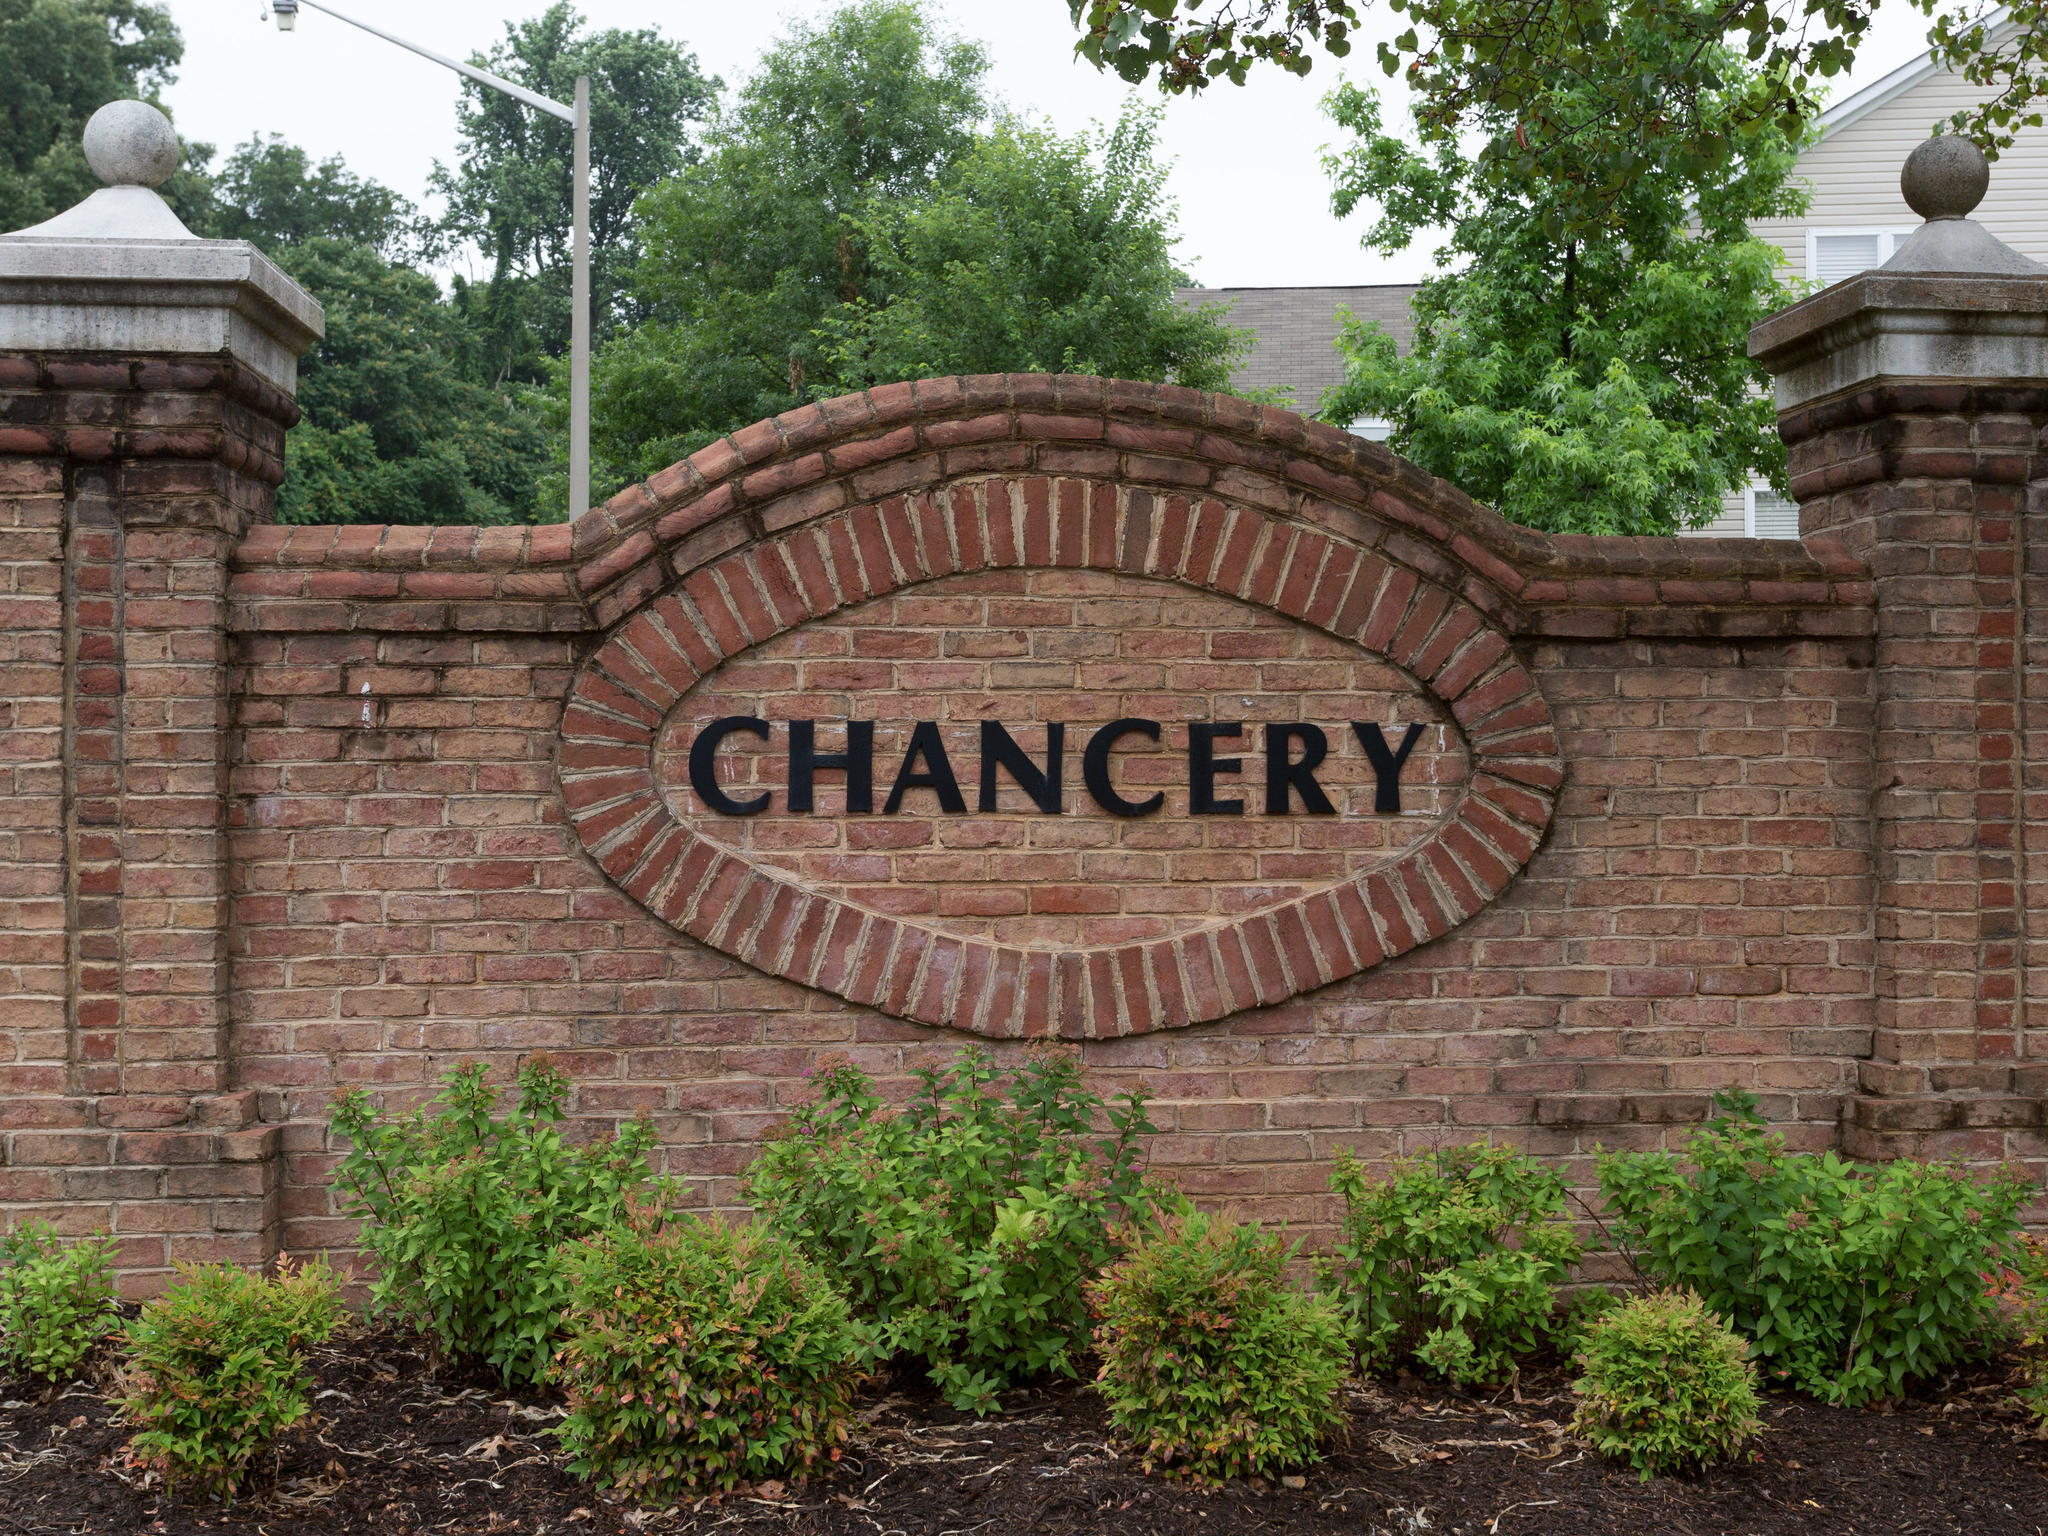 Chancery of Kingstowne